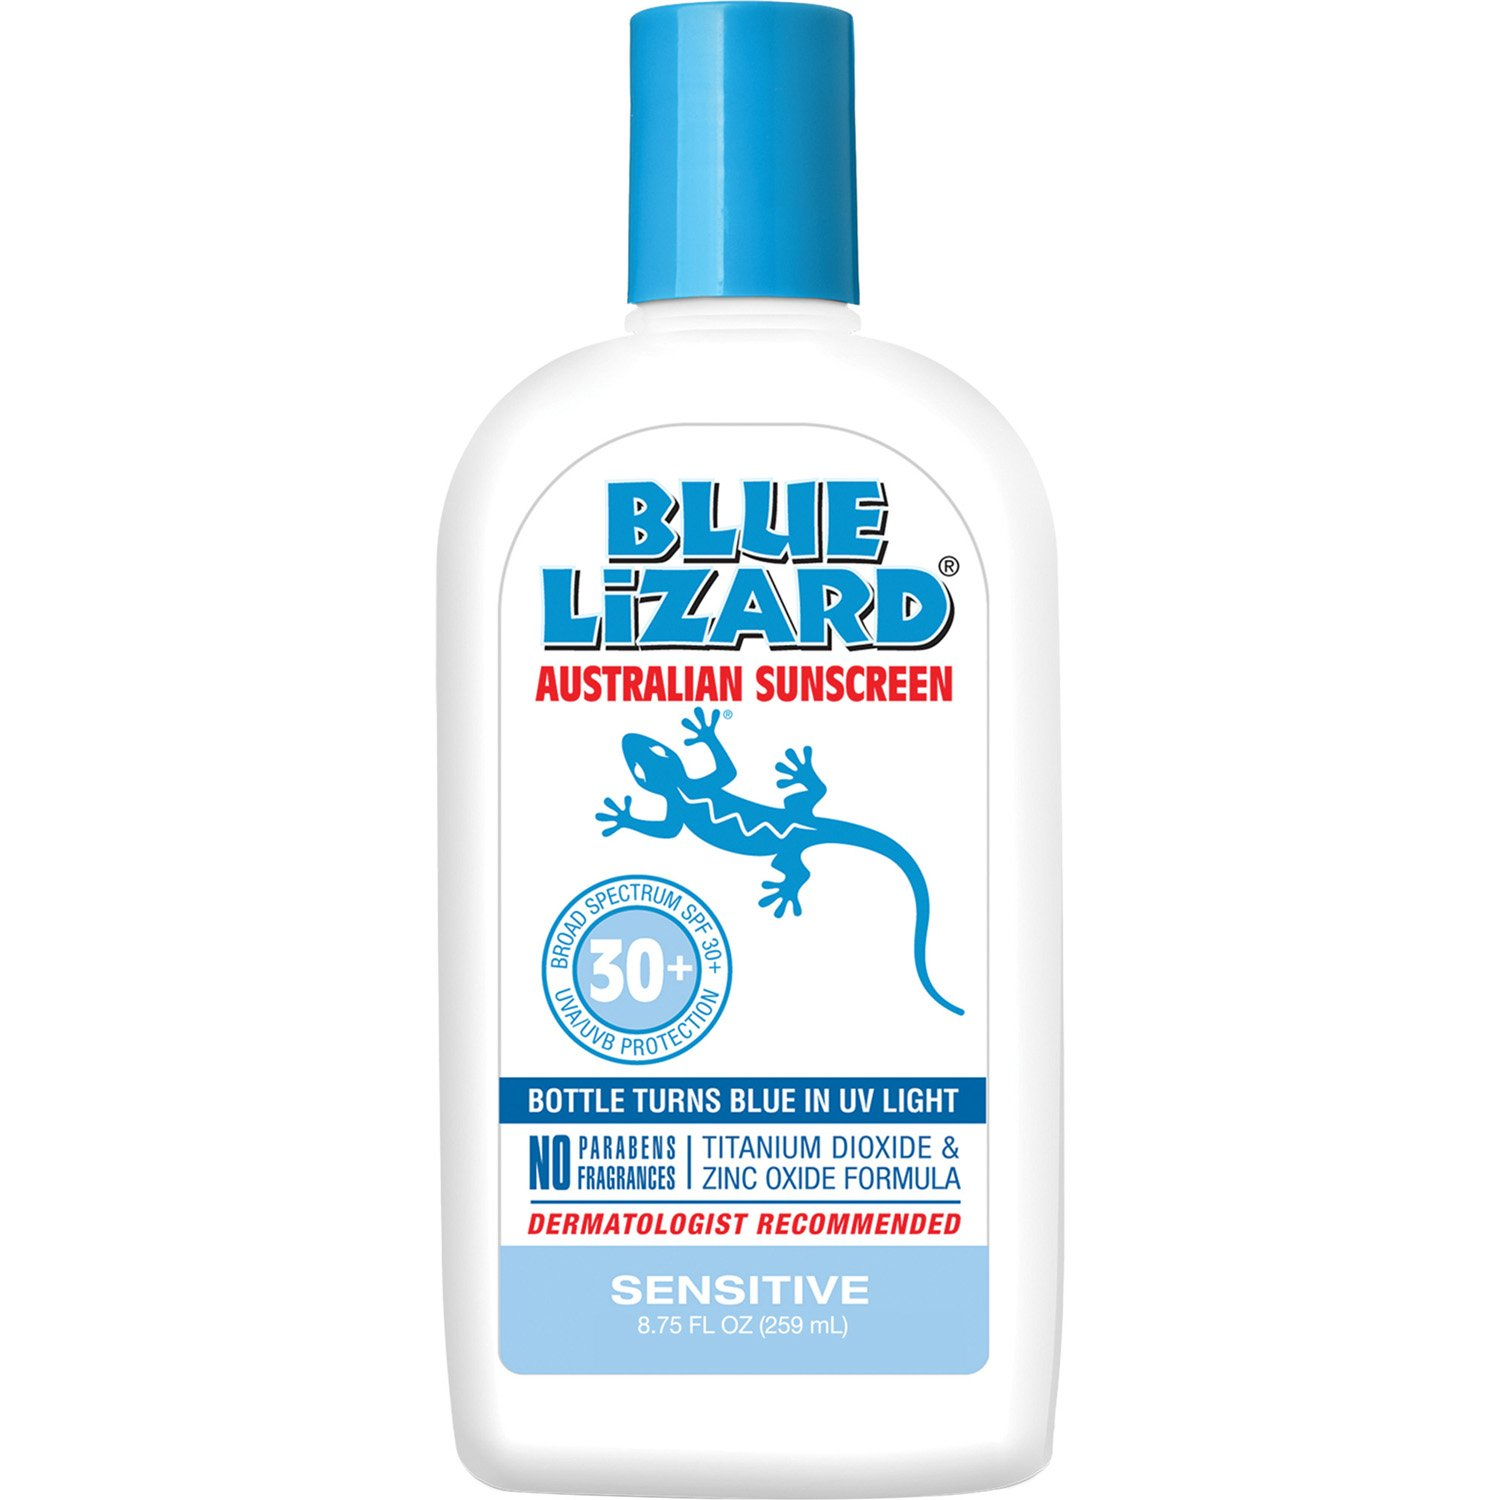 Blue Lizard Australian Sunscreen - Sensitive Sunscreen SPF 30+ Broad Spectrum UVA/UVB Protection - 8.75 oz Bottle